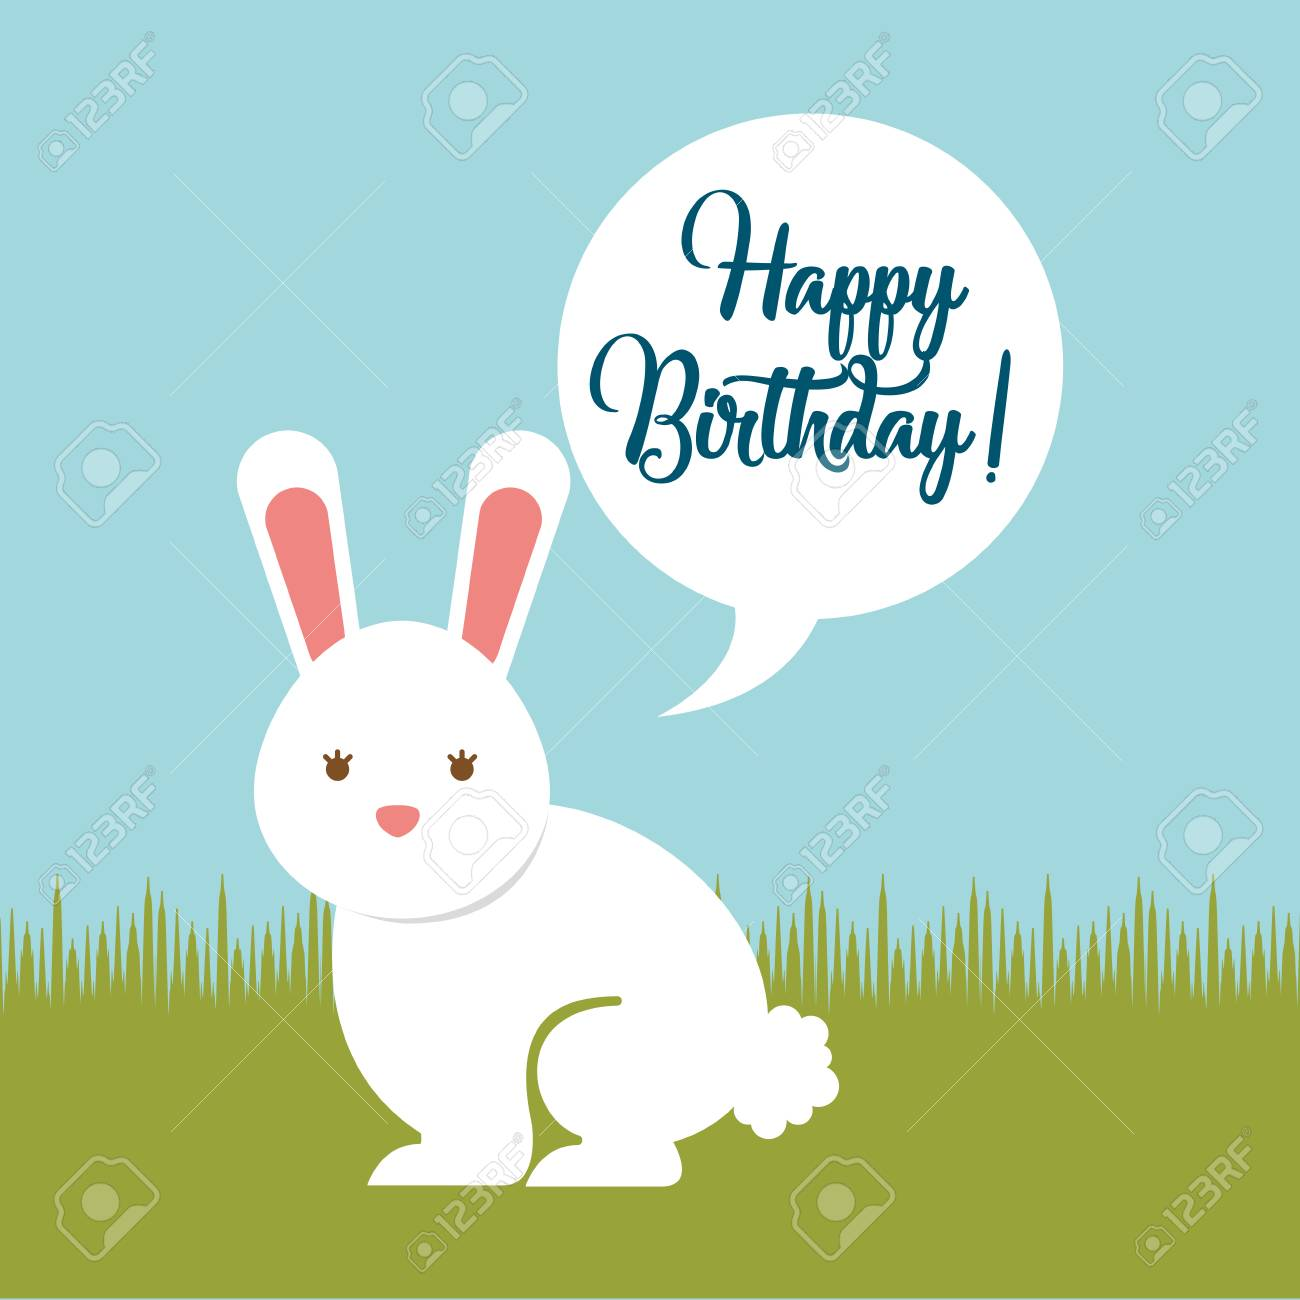 Happy Birthday Card White Rabbit Sitting In Field Vector Illustration Stock